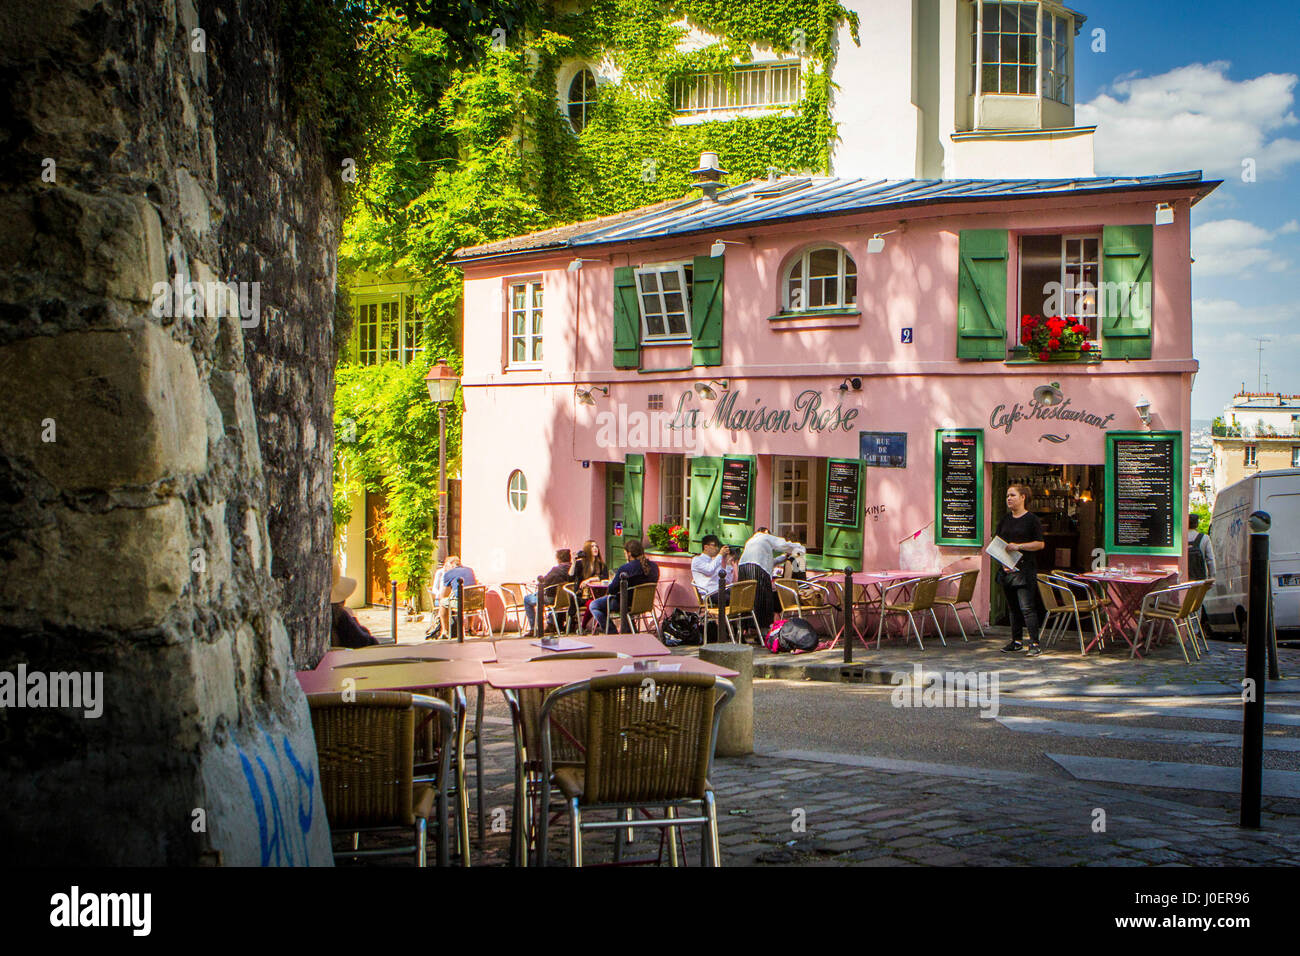 La maison rose cafe in the montmartre neighborhood of paris france